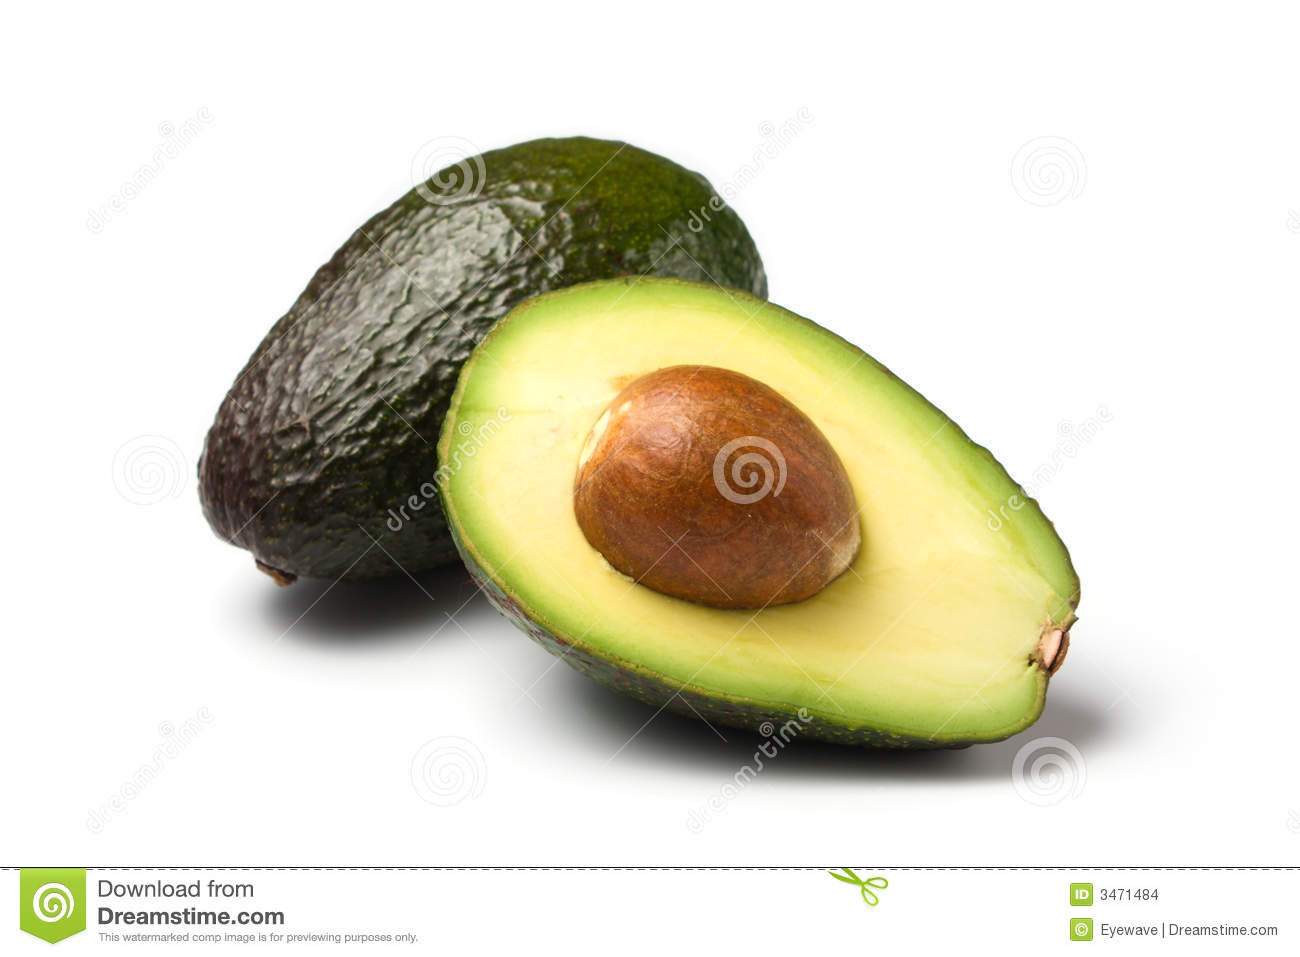 Whole/half avocado isolated